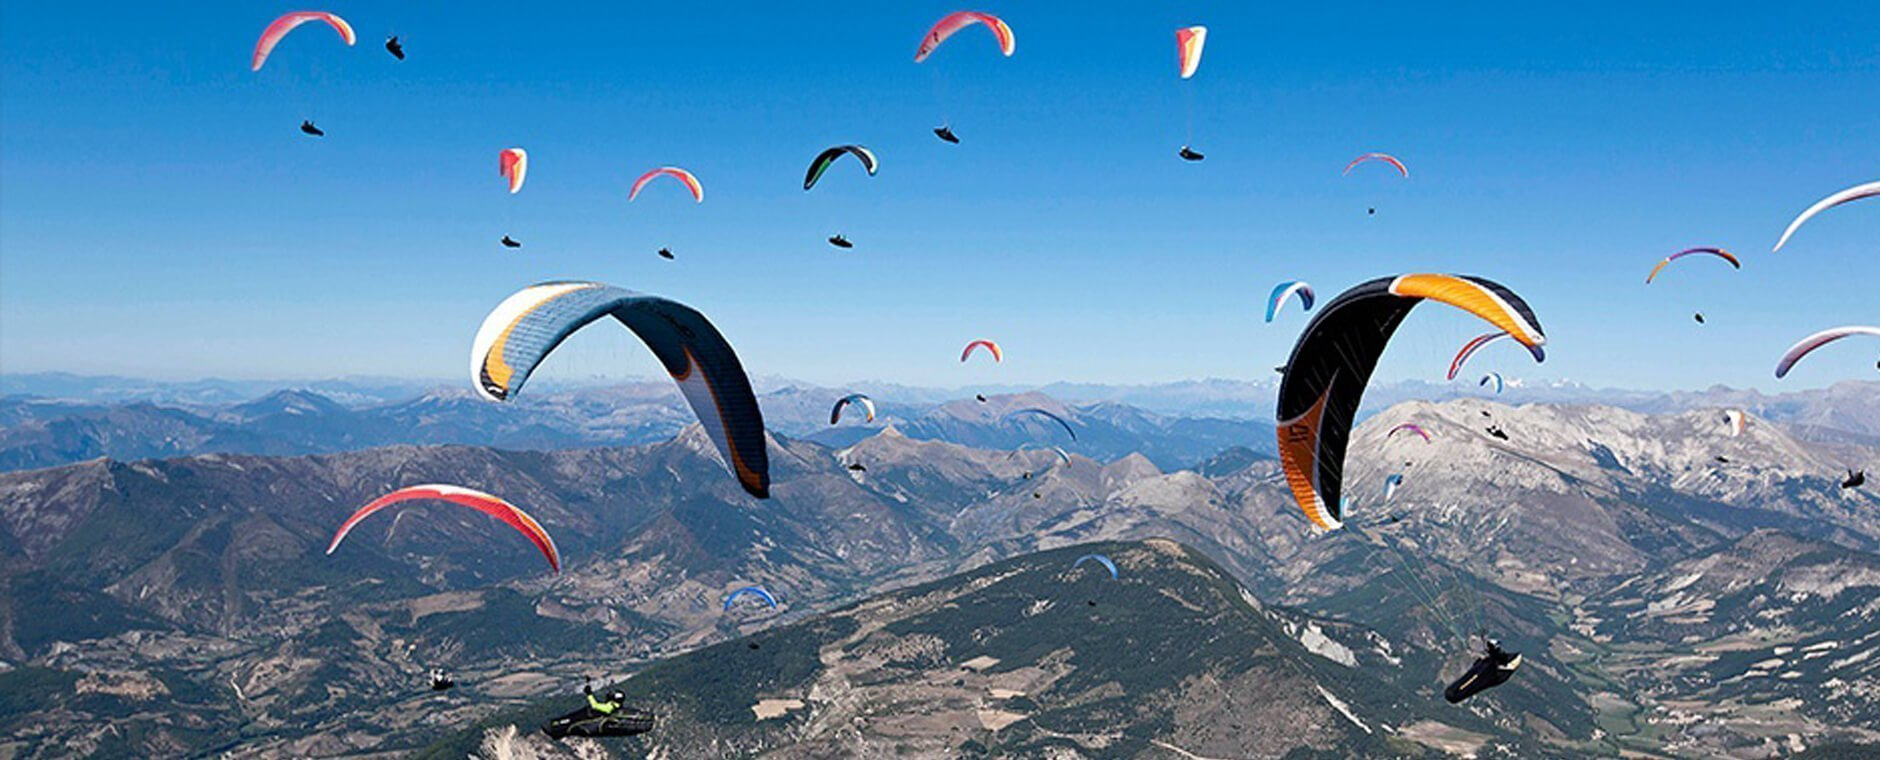 Paragliding in Pokhara. Paragliding is a recreational ...